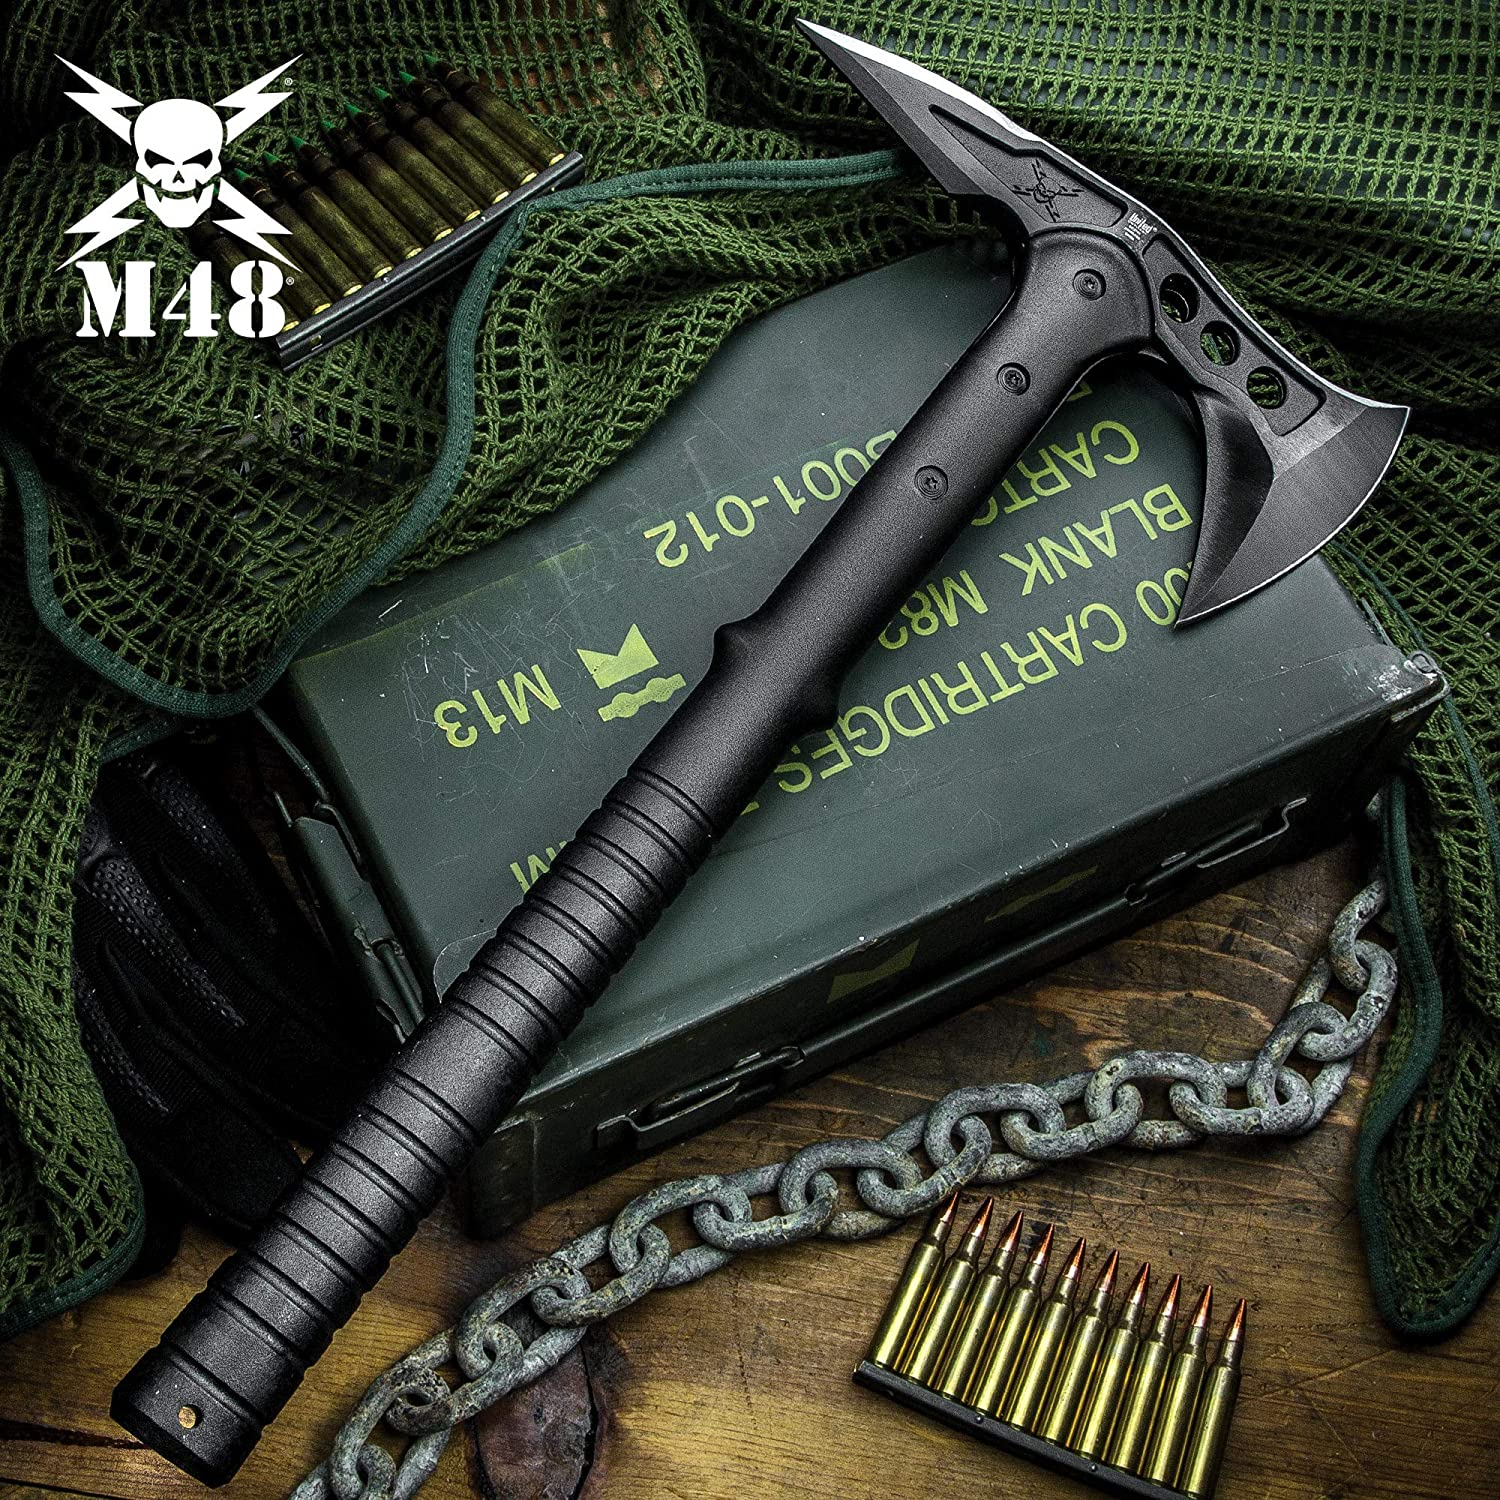 United Cutlery M48 Tactical Tomahawk Axe